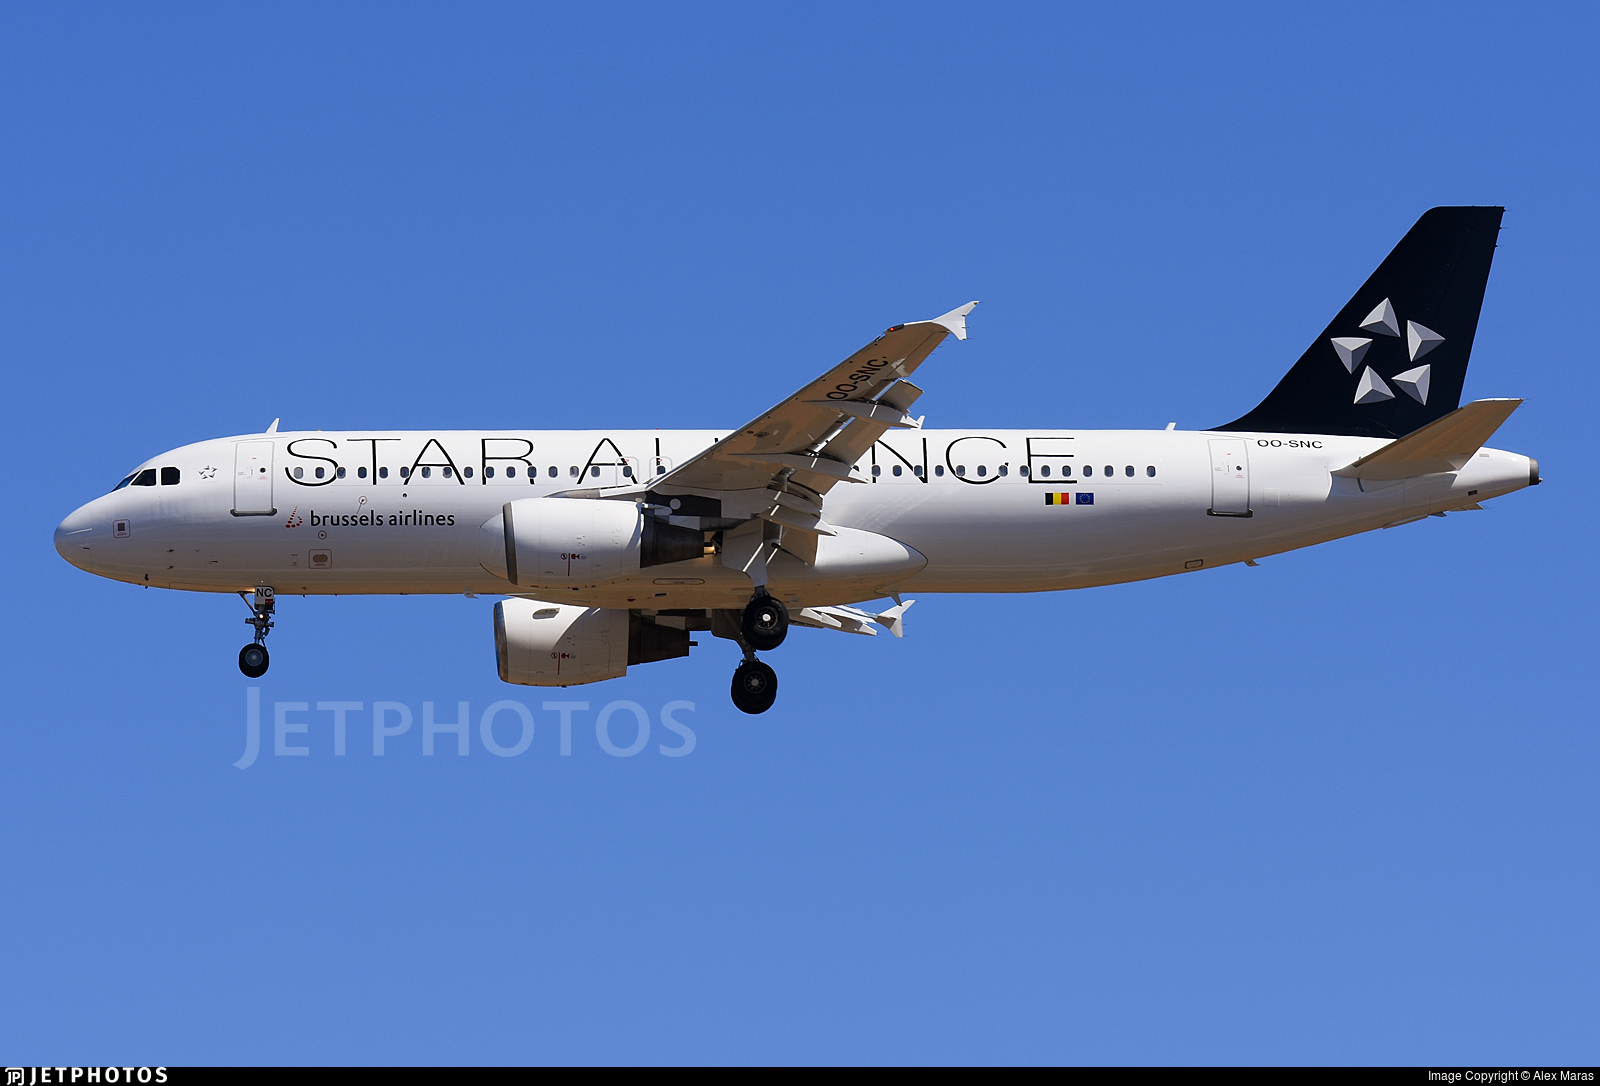 OO-SNC in new Star Alliance livery